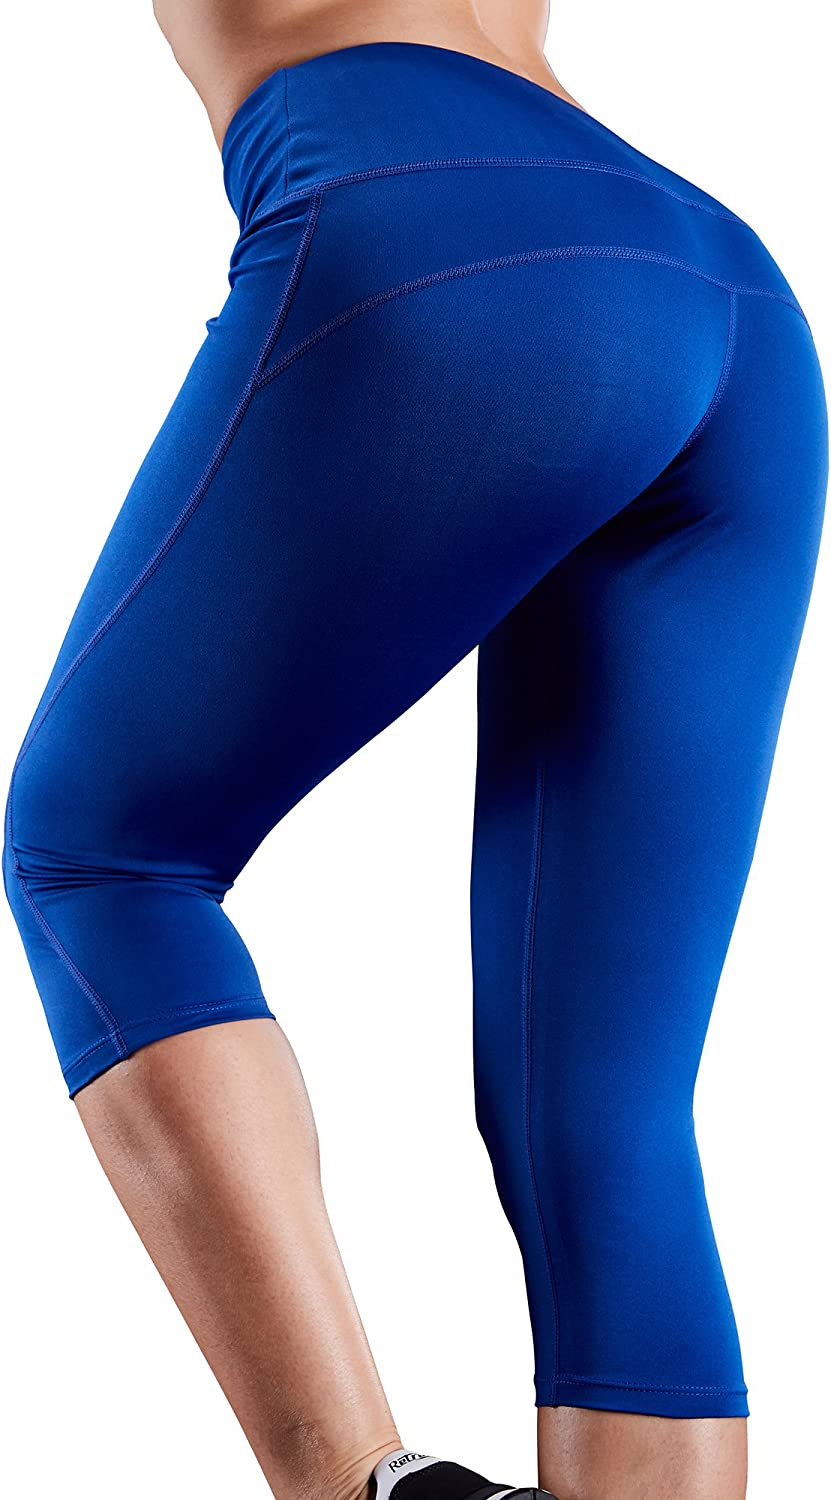 Neleus Womens Tummy Control High Waist Capri Leggings Yoga Pants with Pockets